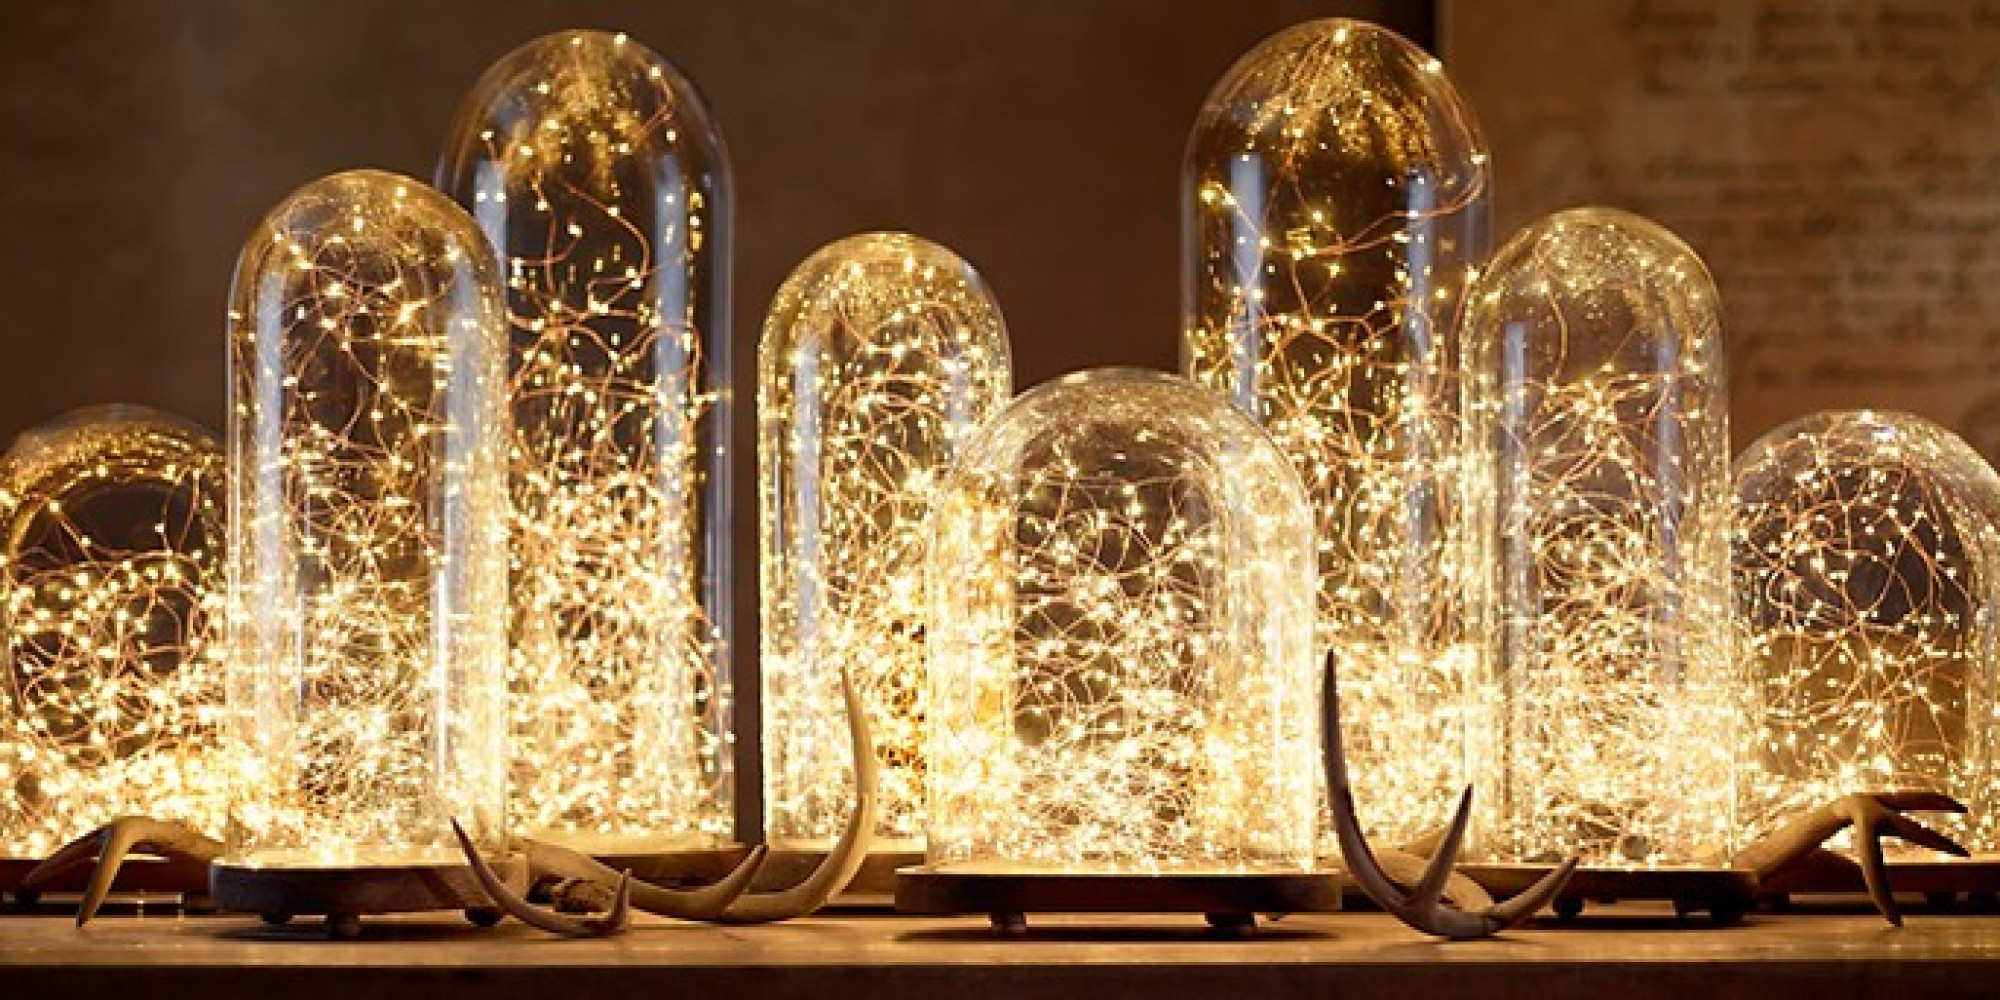 Hd Design String Lights : Restoration Hardware Might Have 2013's Best Christmas Lights HuffPost